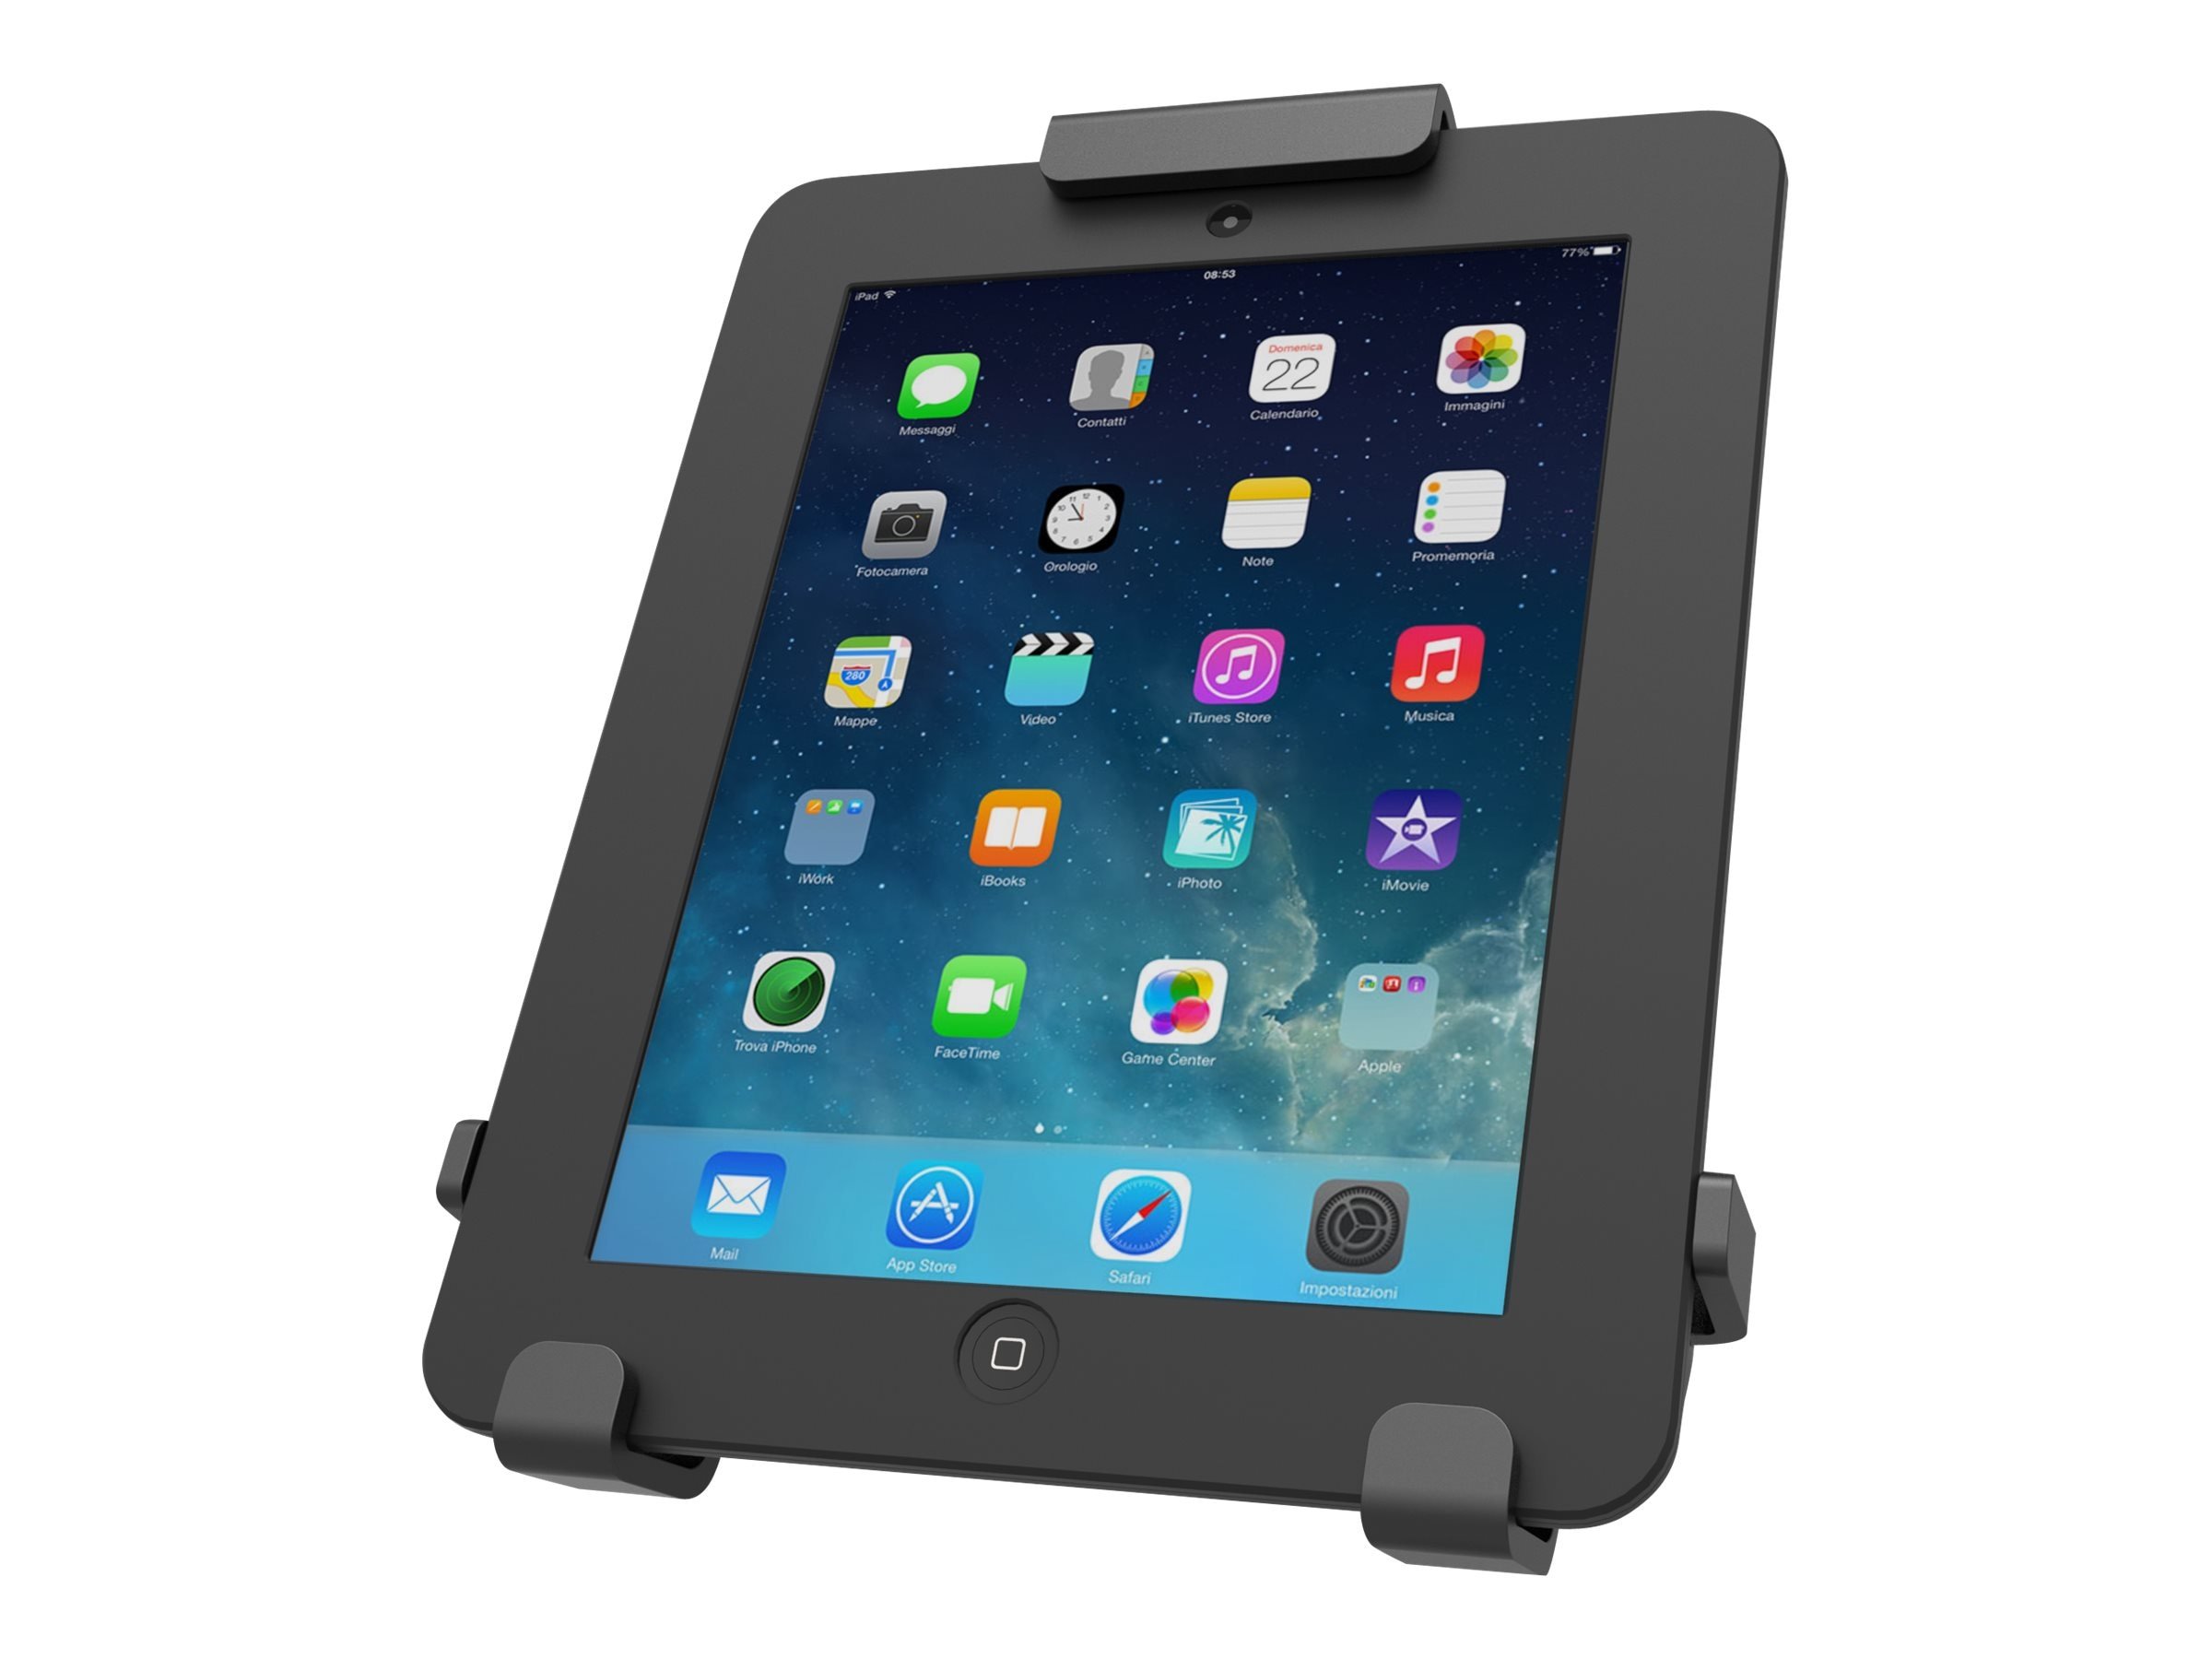 Maclocks Universal Tablet Rugged Locking Case Mount, 820BRCH